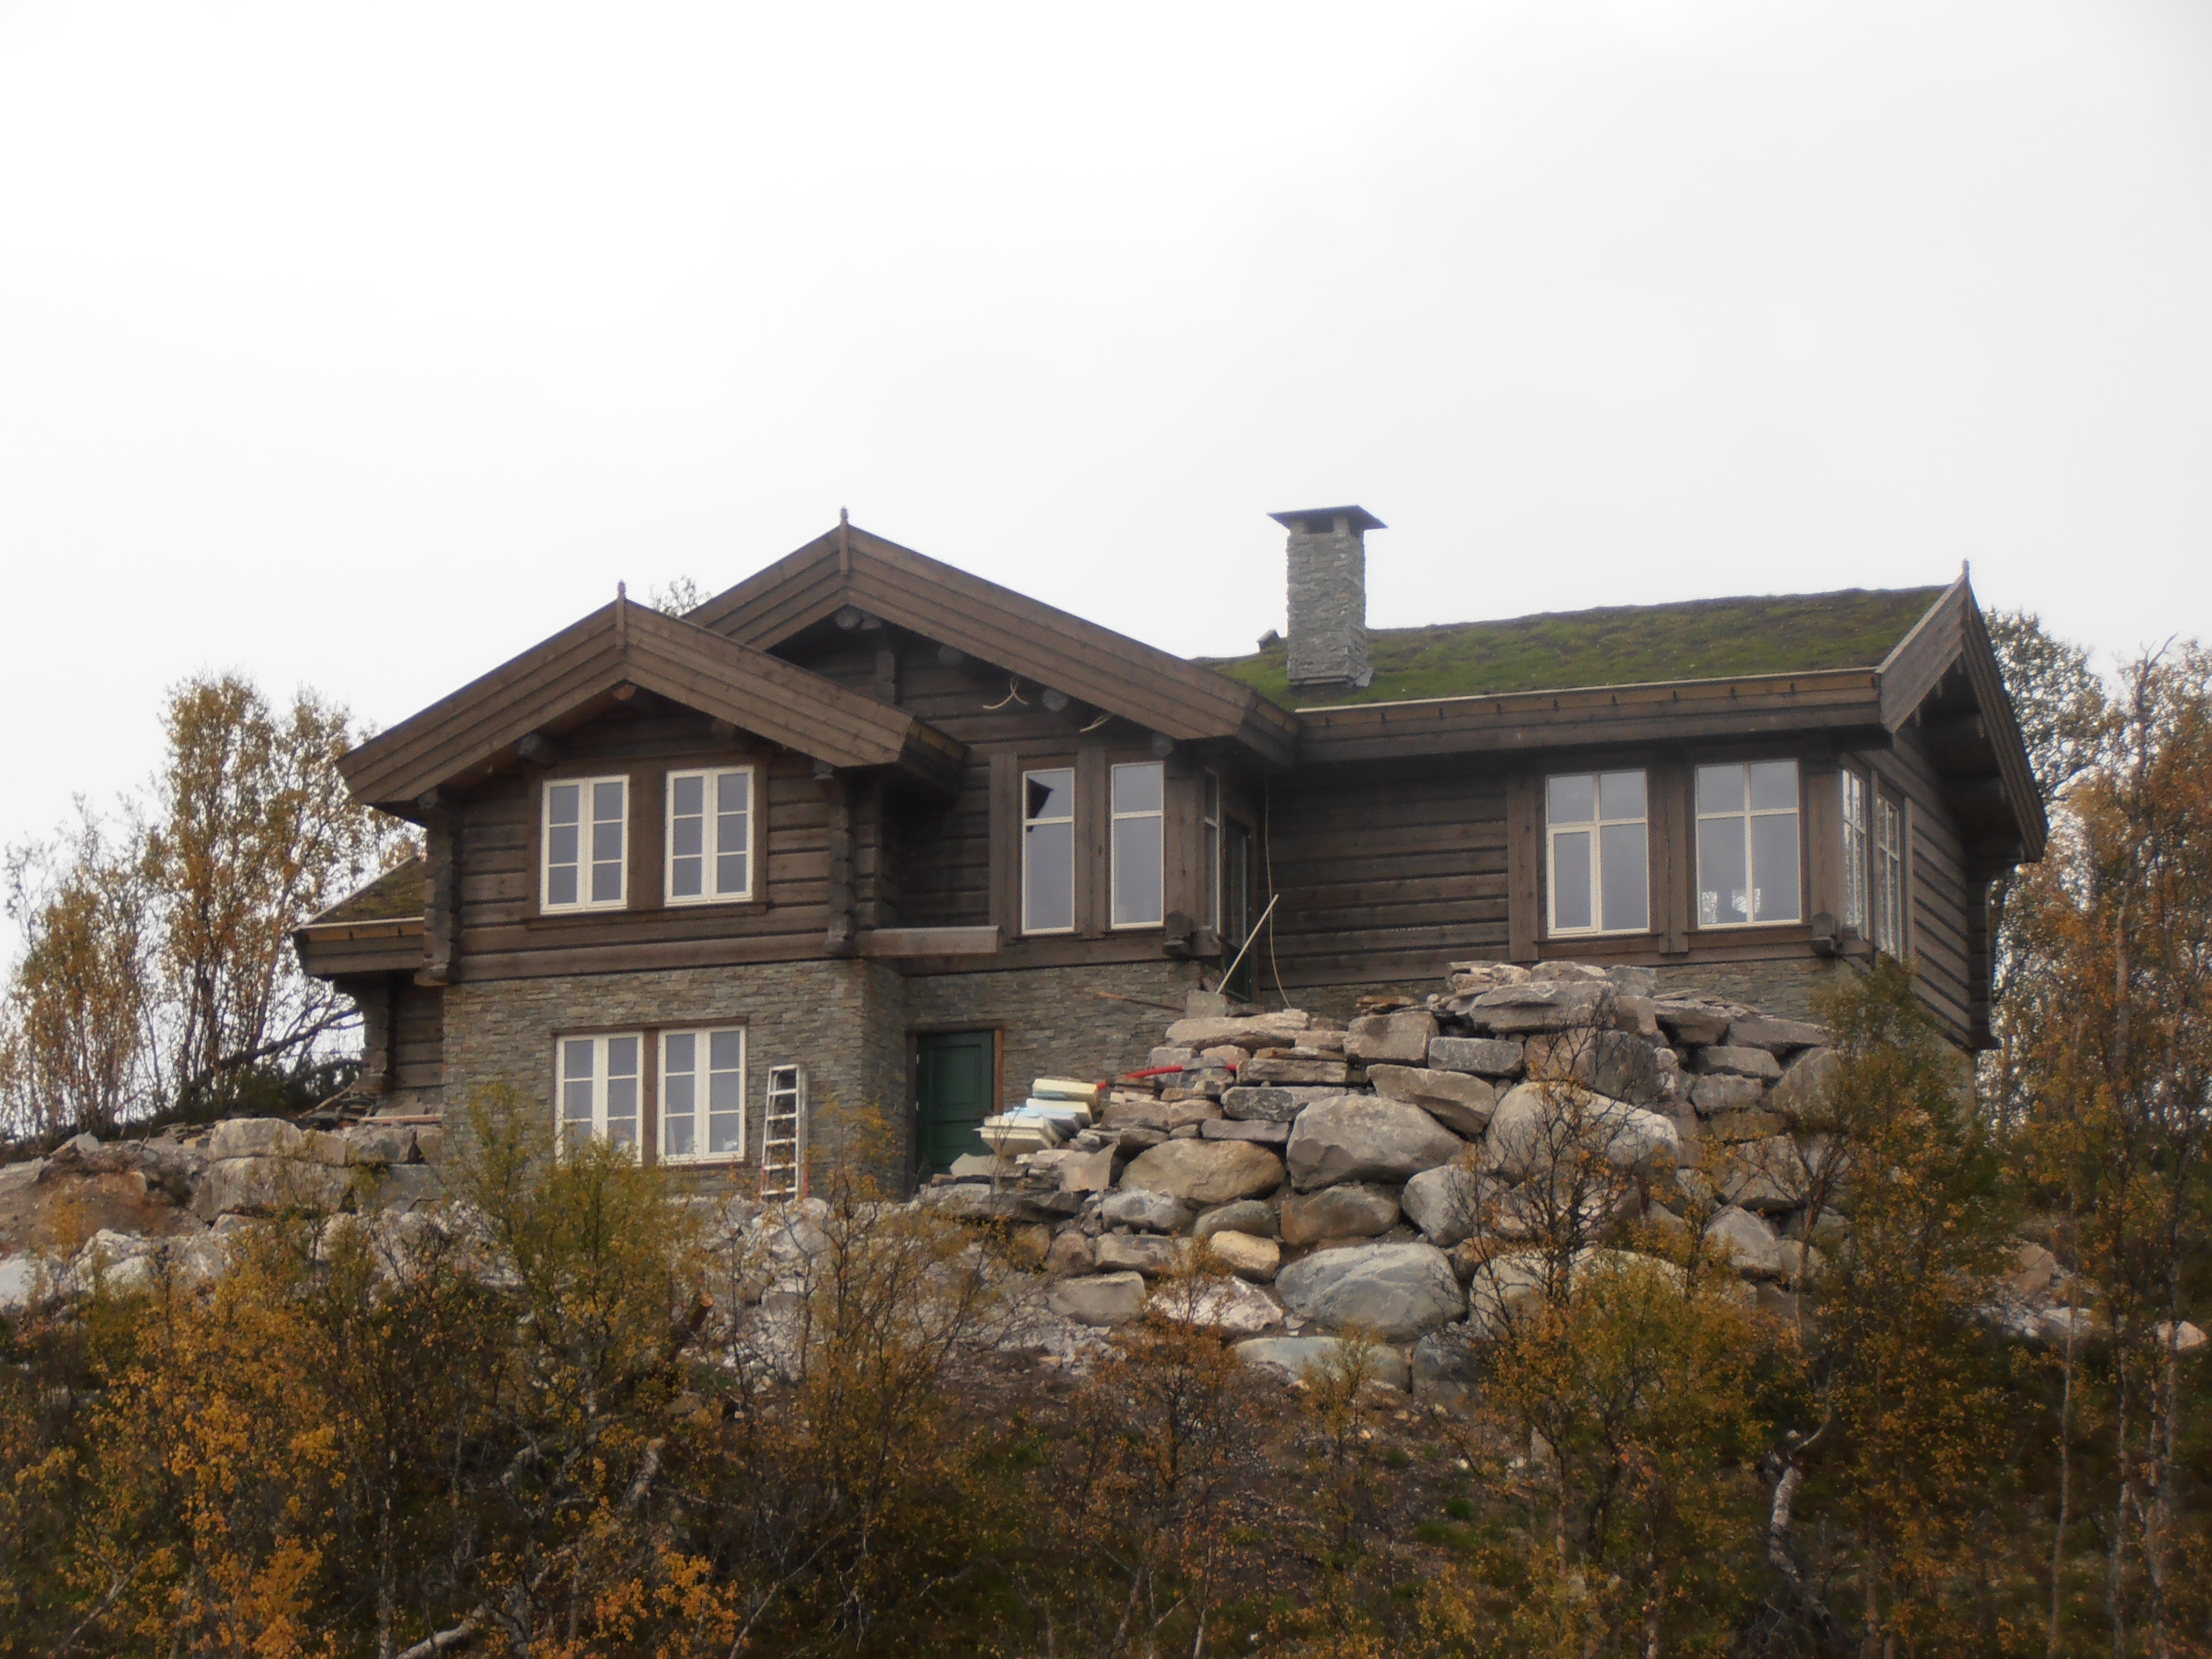 Living house hovden 5 hovden norway baltic wood houses for Norway wooden houses